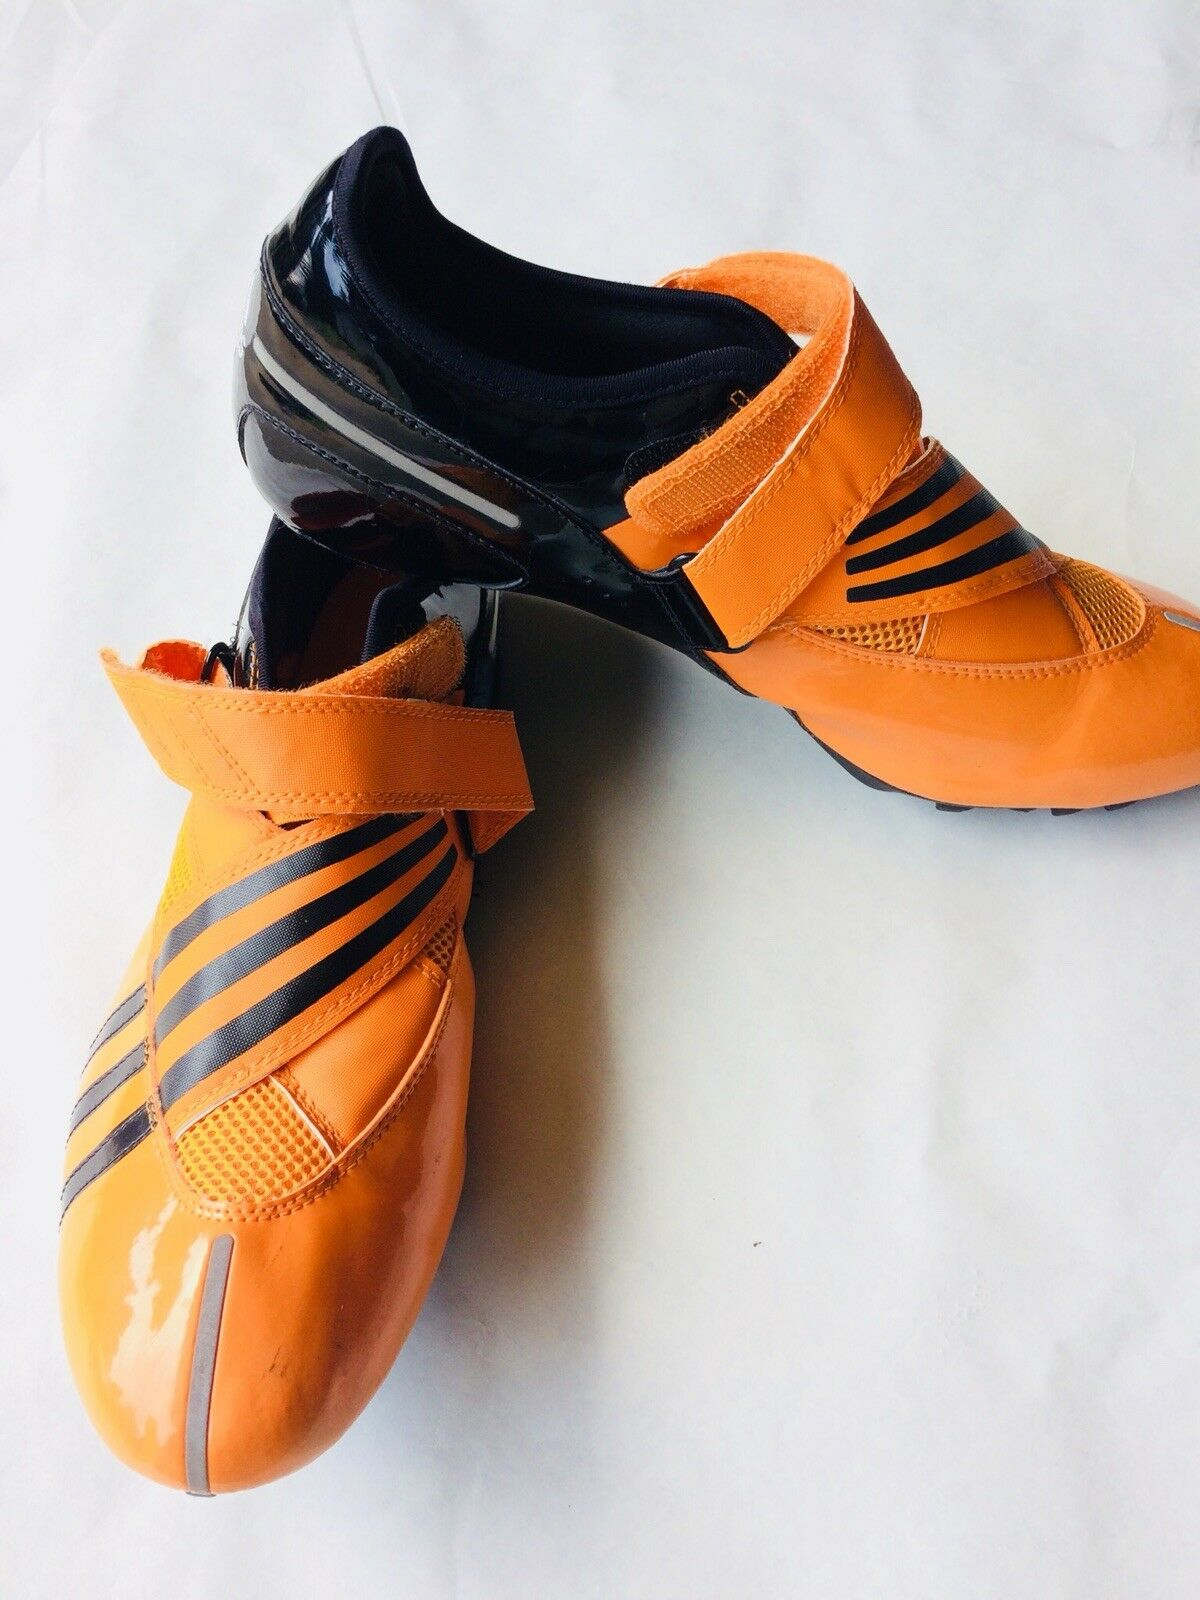 Adidas Adistar Sprint Mens Track Shoe Orange Black 13